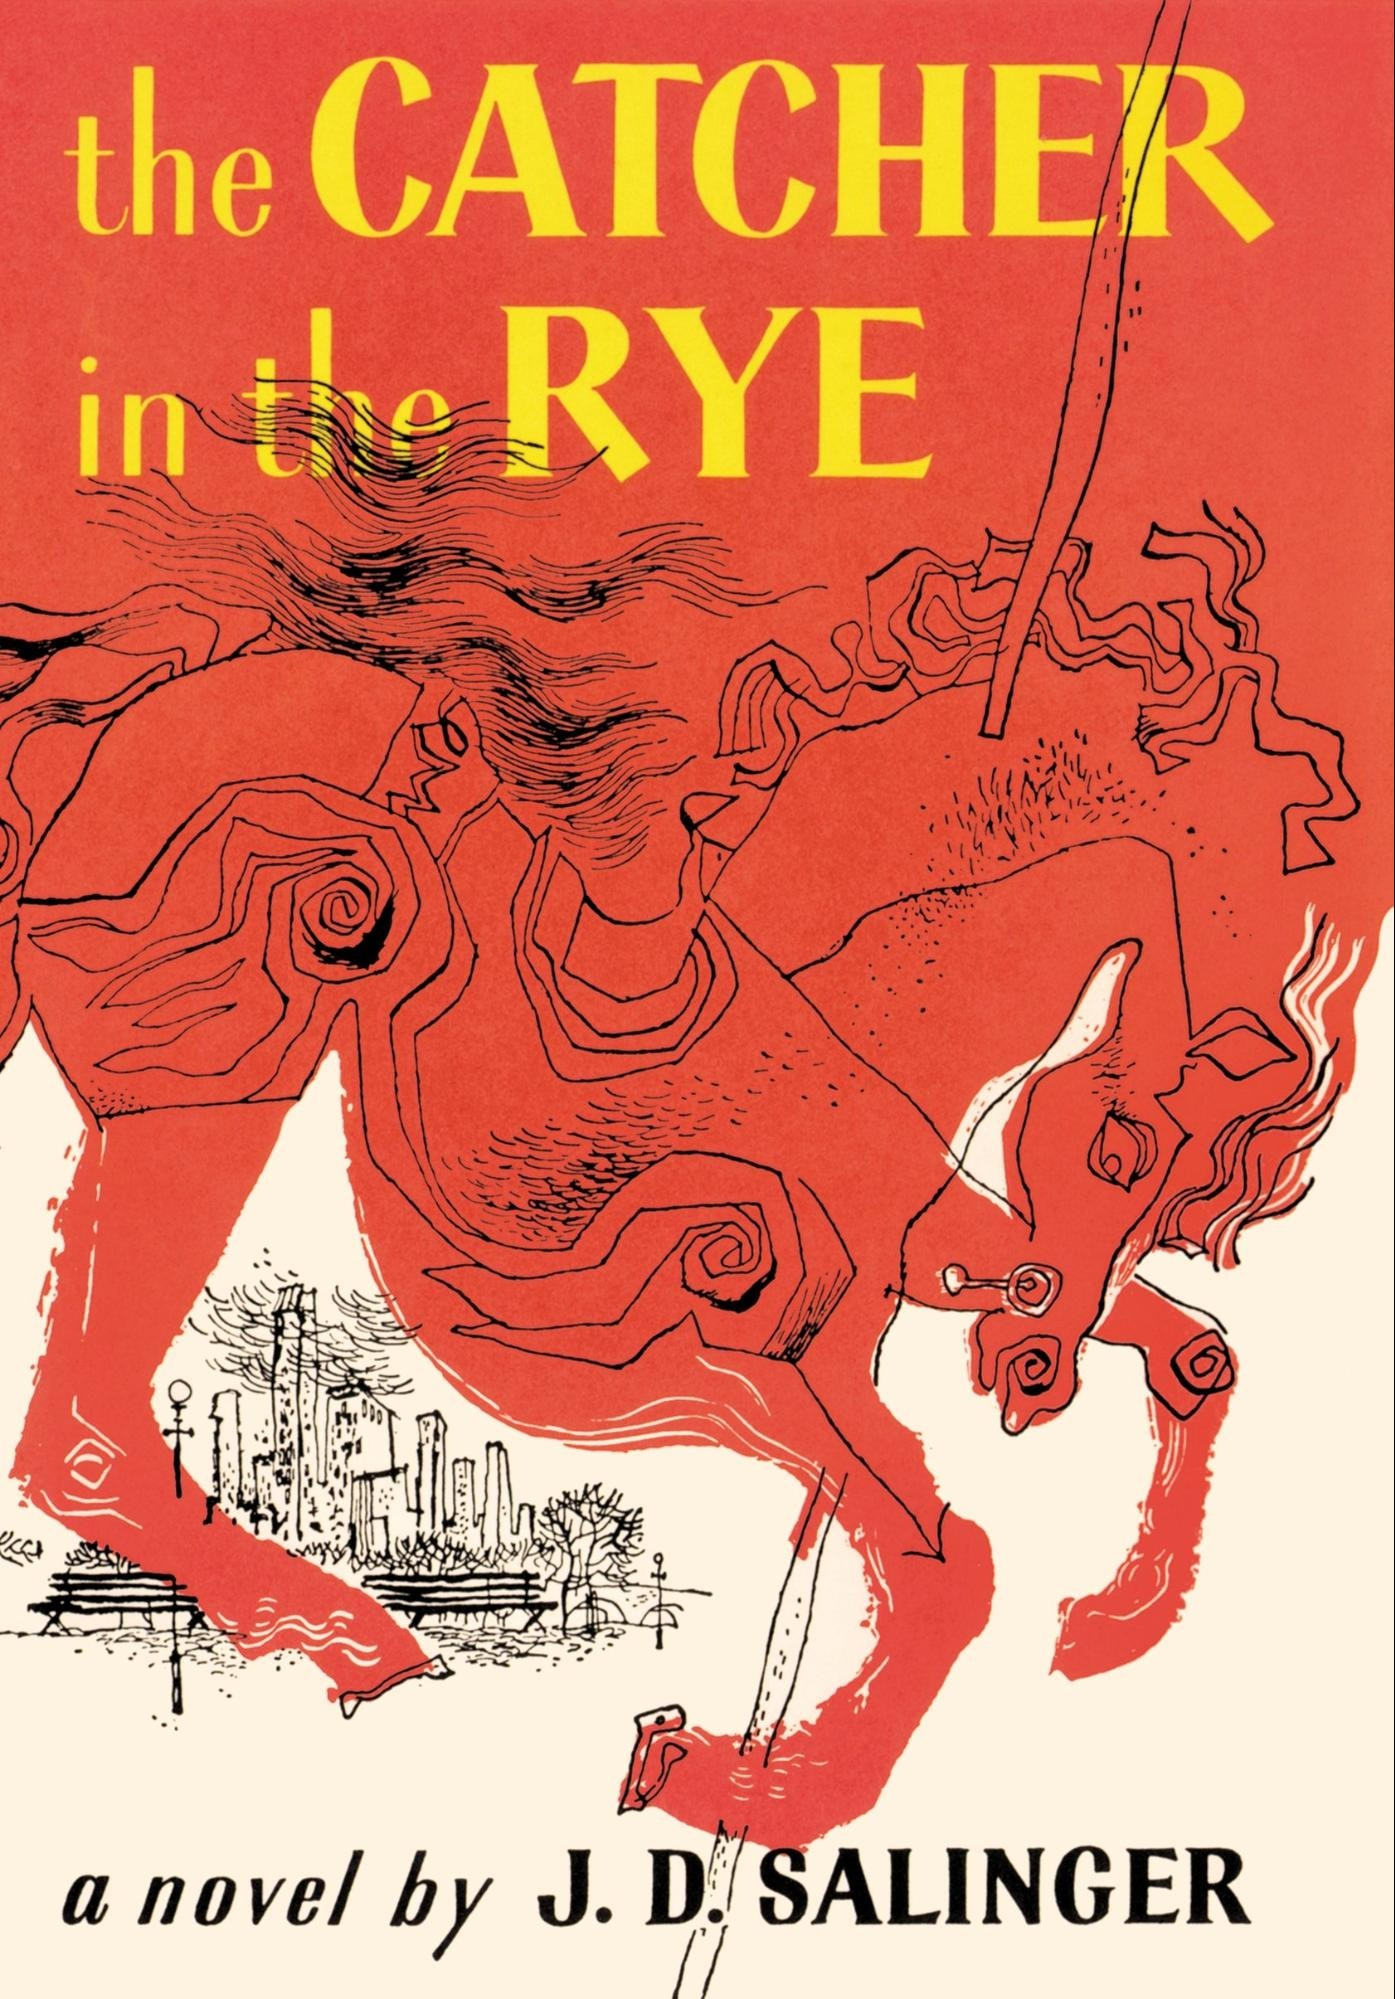 The Catcher in the Rye – J.D. Salinger